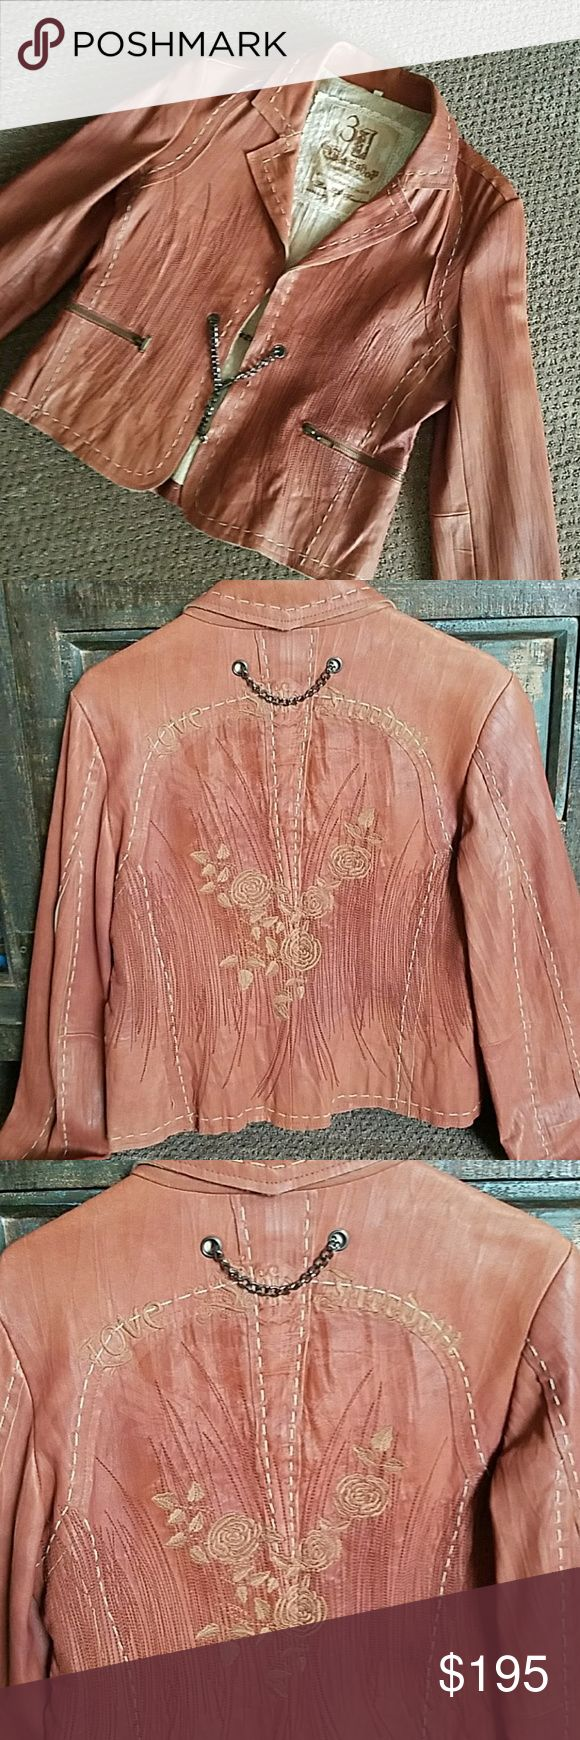 Johnny Was 3J Workshop lambskin leather jacket Beautiful like new 3J Workshop by Johnny Was embroidered limited edition brown lambskin leather jacket with chain closure and accent! I love it but it is too small! Johnny Was Jackets & Coats Blazers